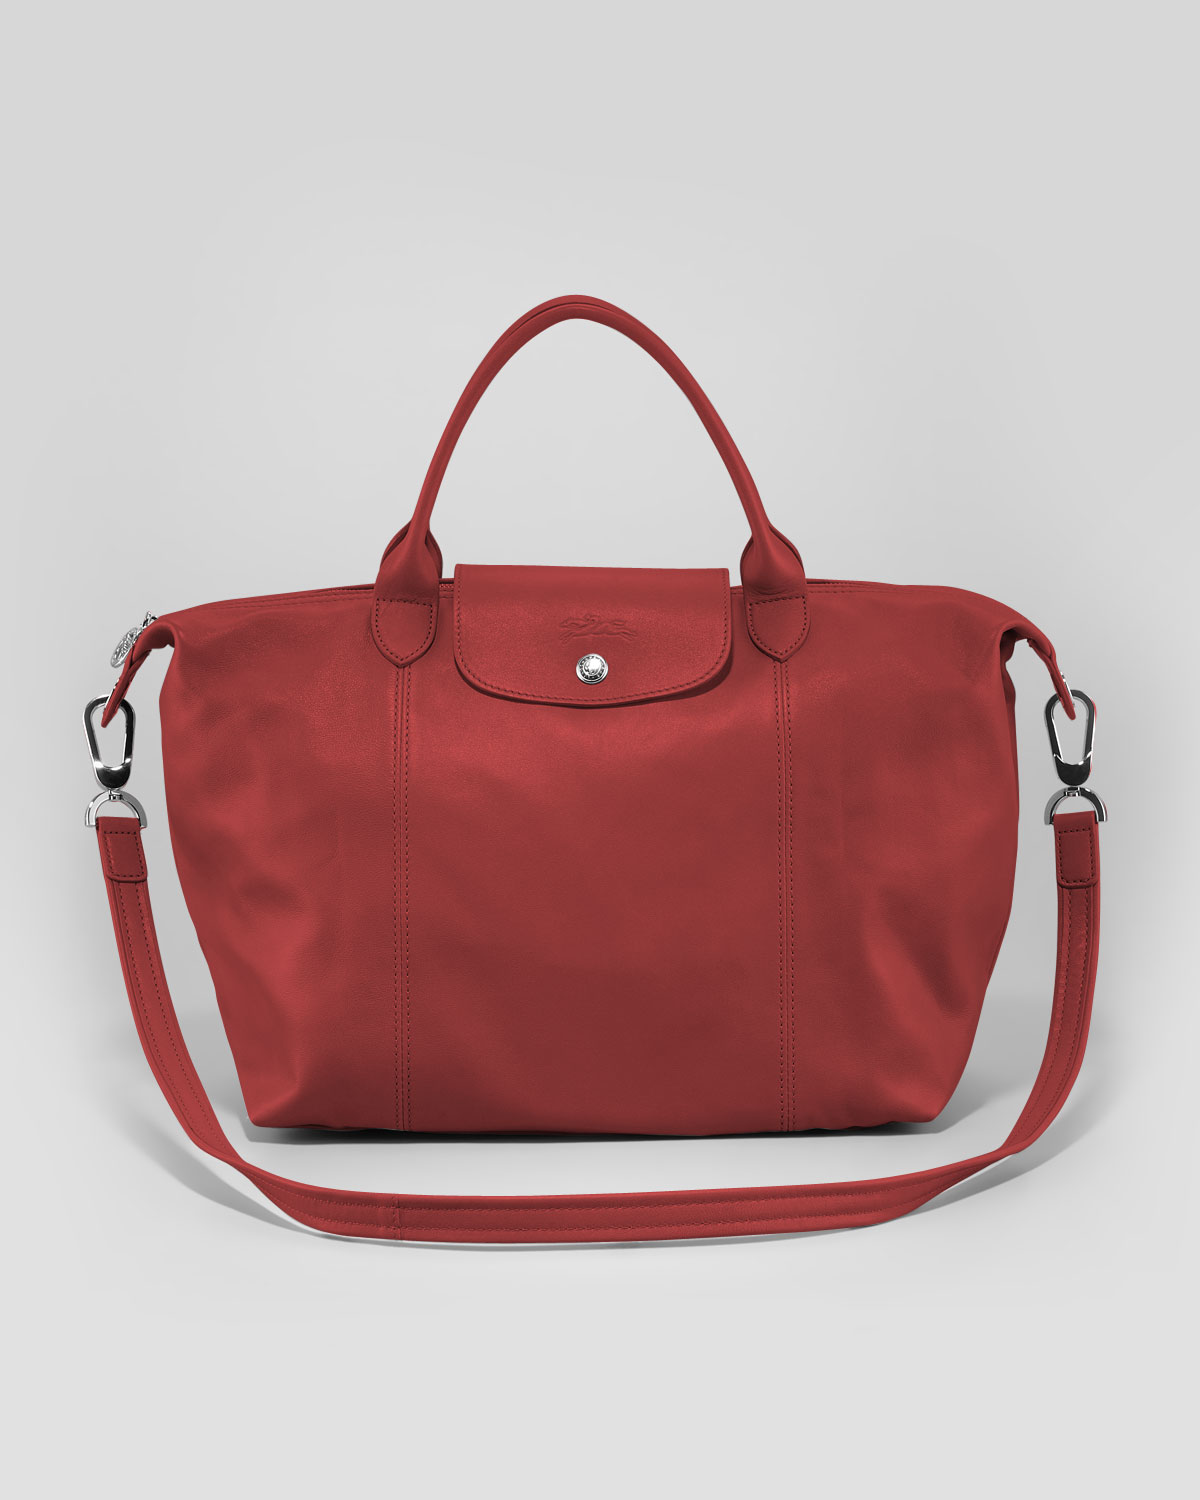 longchamp le pliage cuir handbag with strap in red lyst. Black Bedroom Furniture Sets. Home Design Ideas